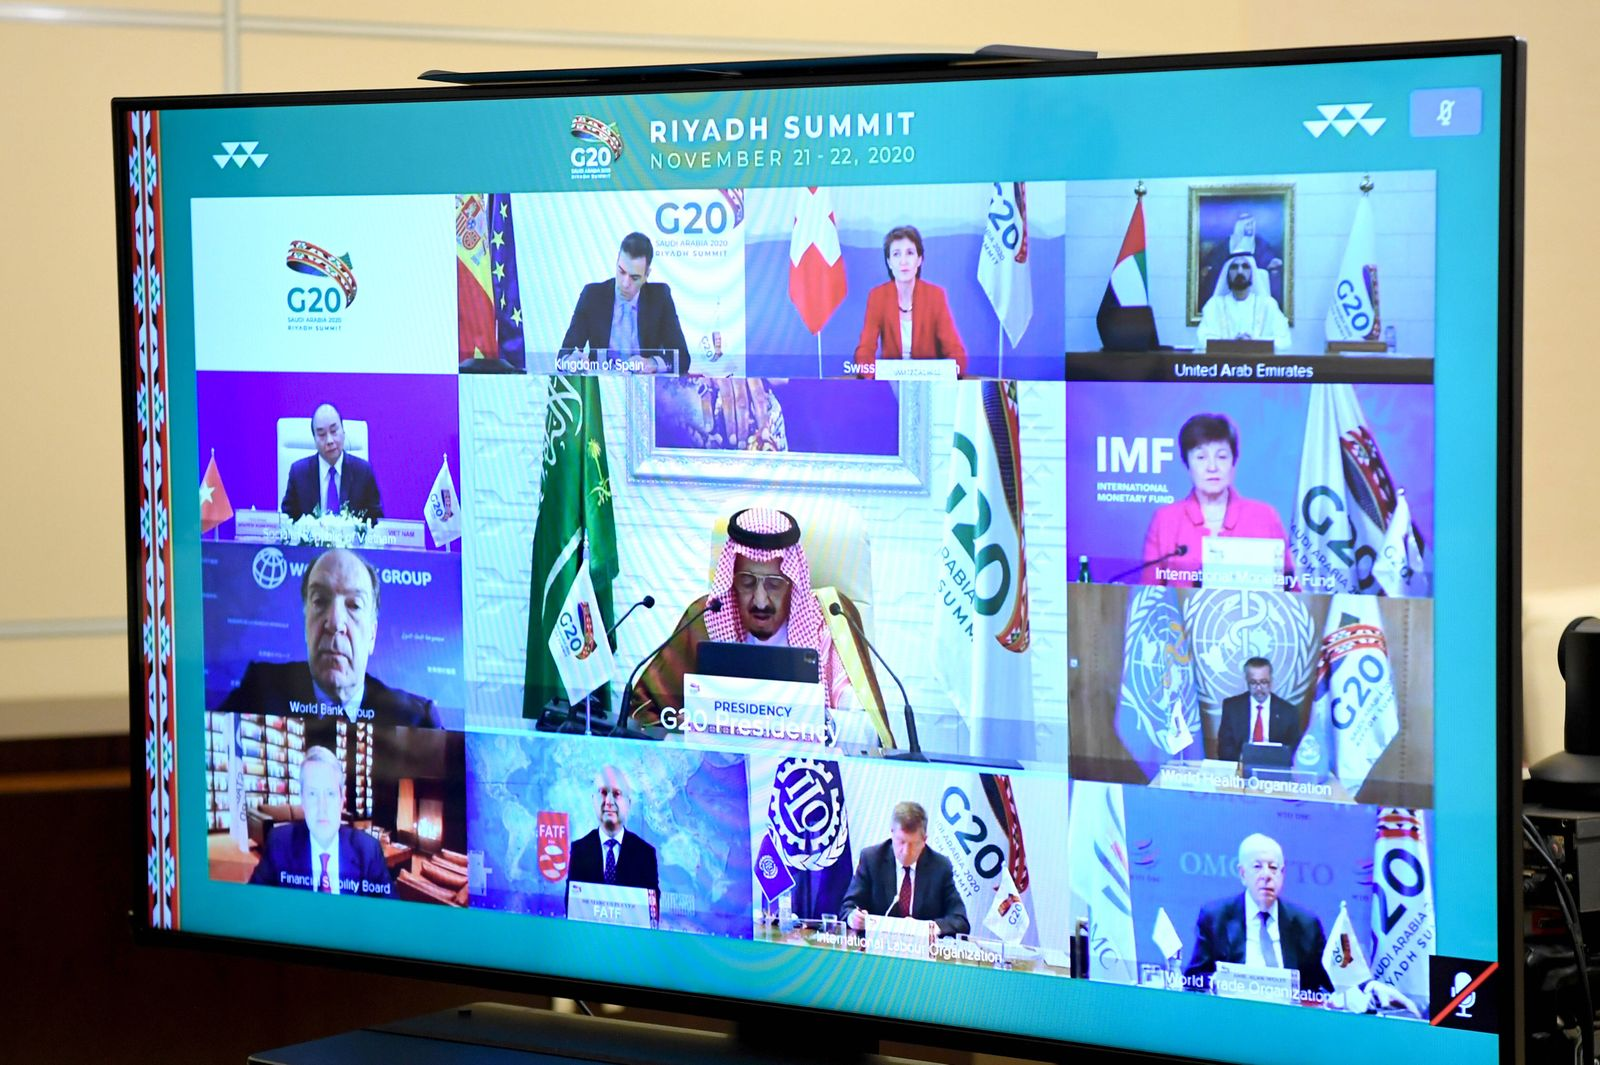 MOSCOW REGION, RUSSIA - NOVEMBER 21, 2020: Seen in this photograph is a video screen in the Russian president s office